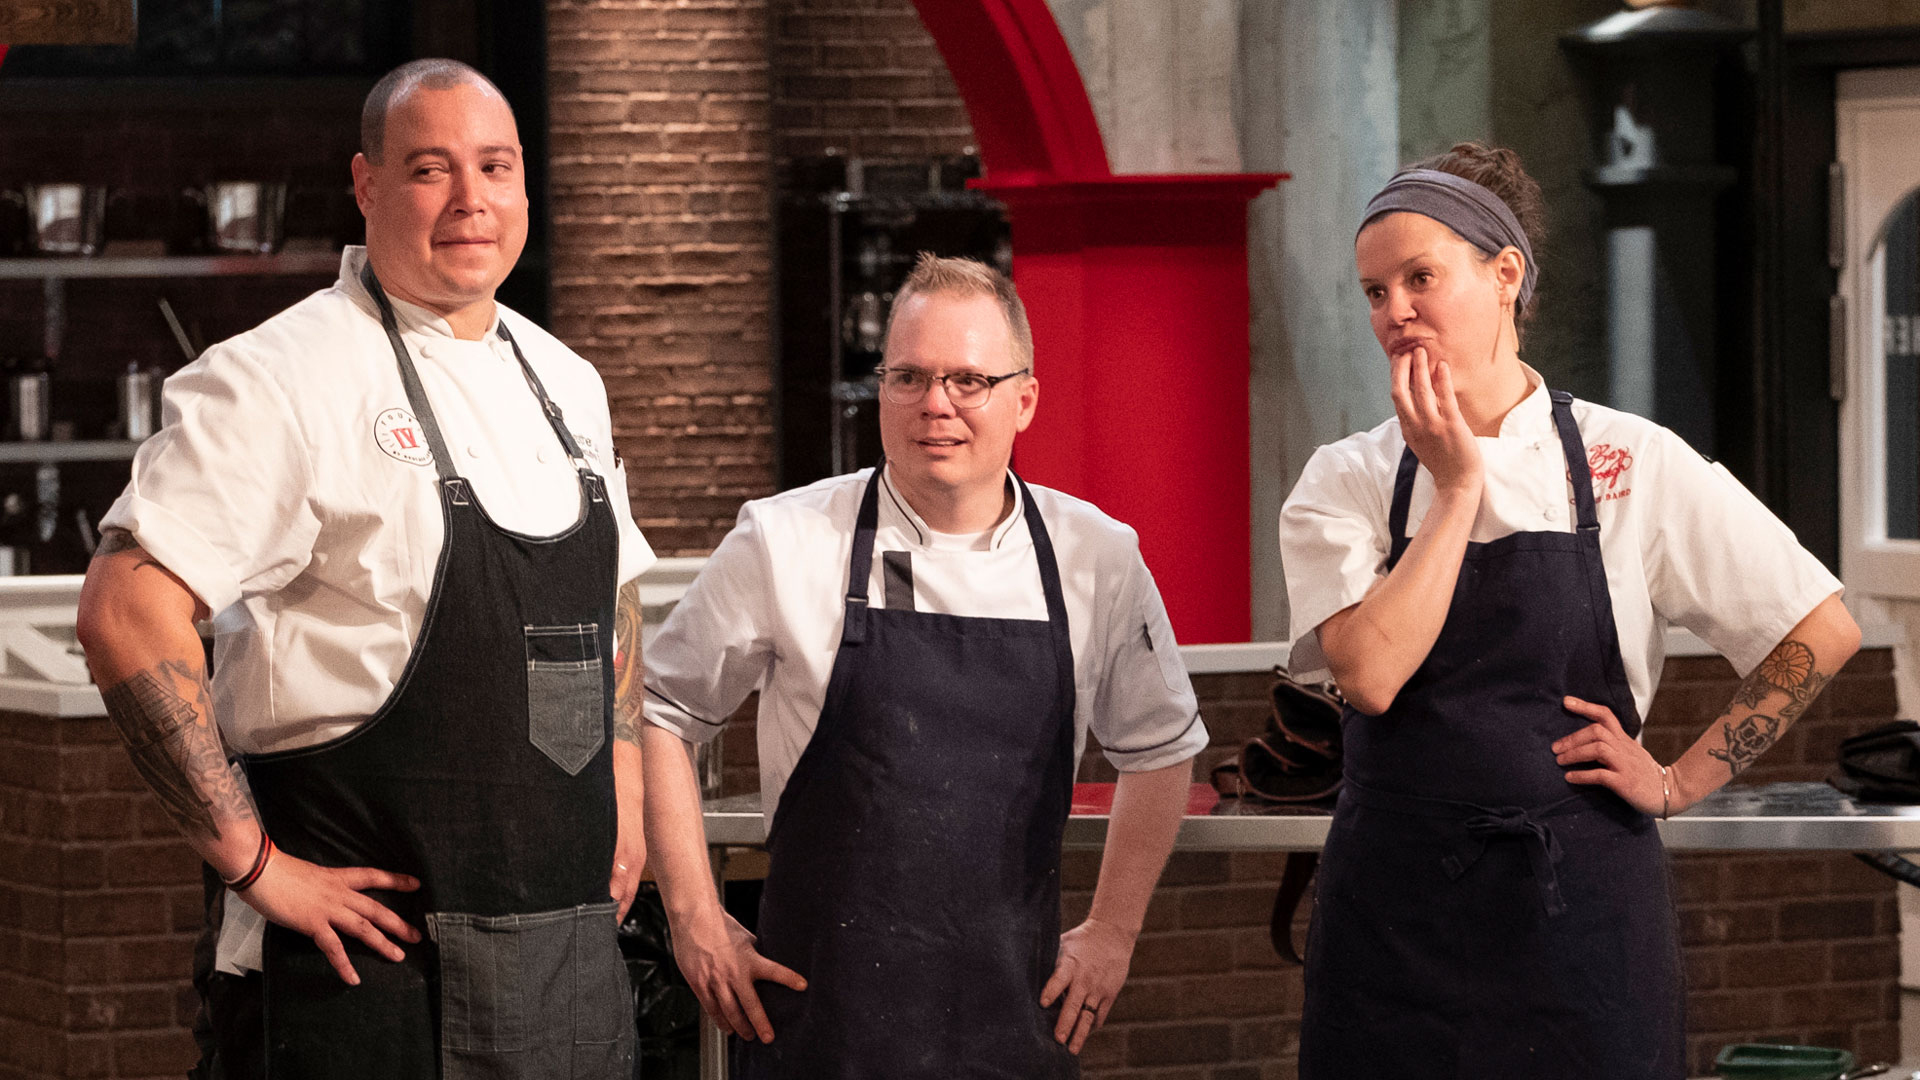 Top Chef's First Eliminated Chef Faces Hot Competition From Formidable Vets — For One More Chance